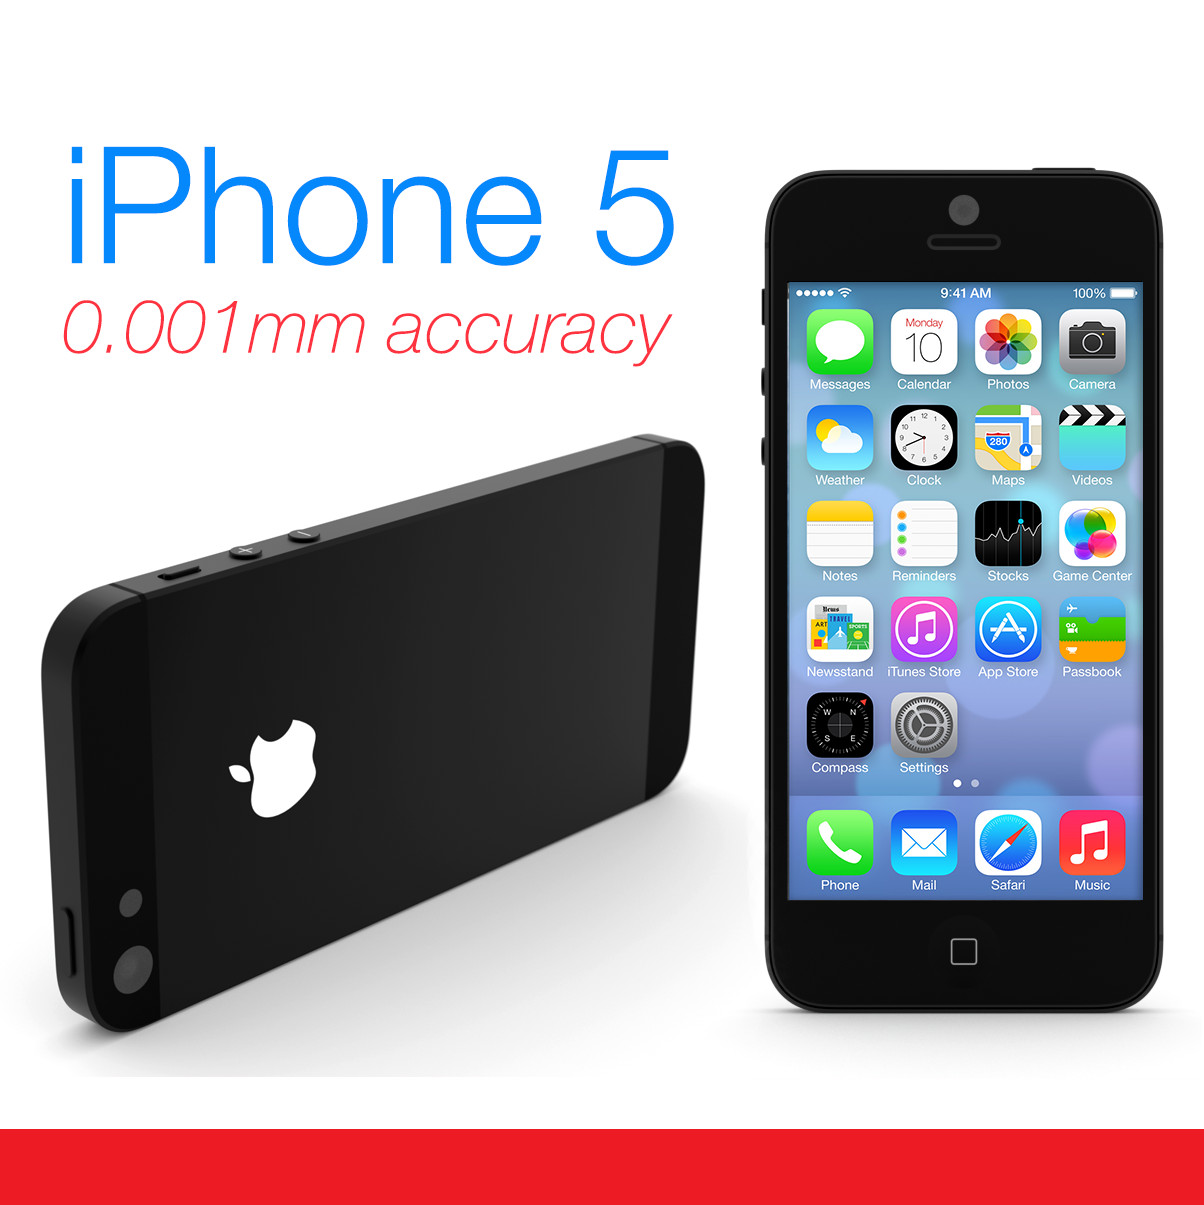 iPhone_5-promo-red-sq.png